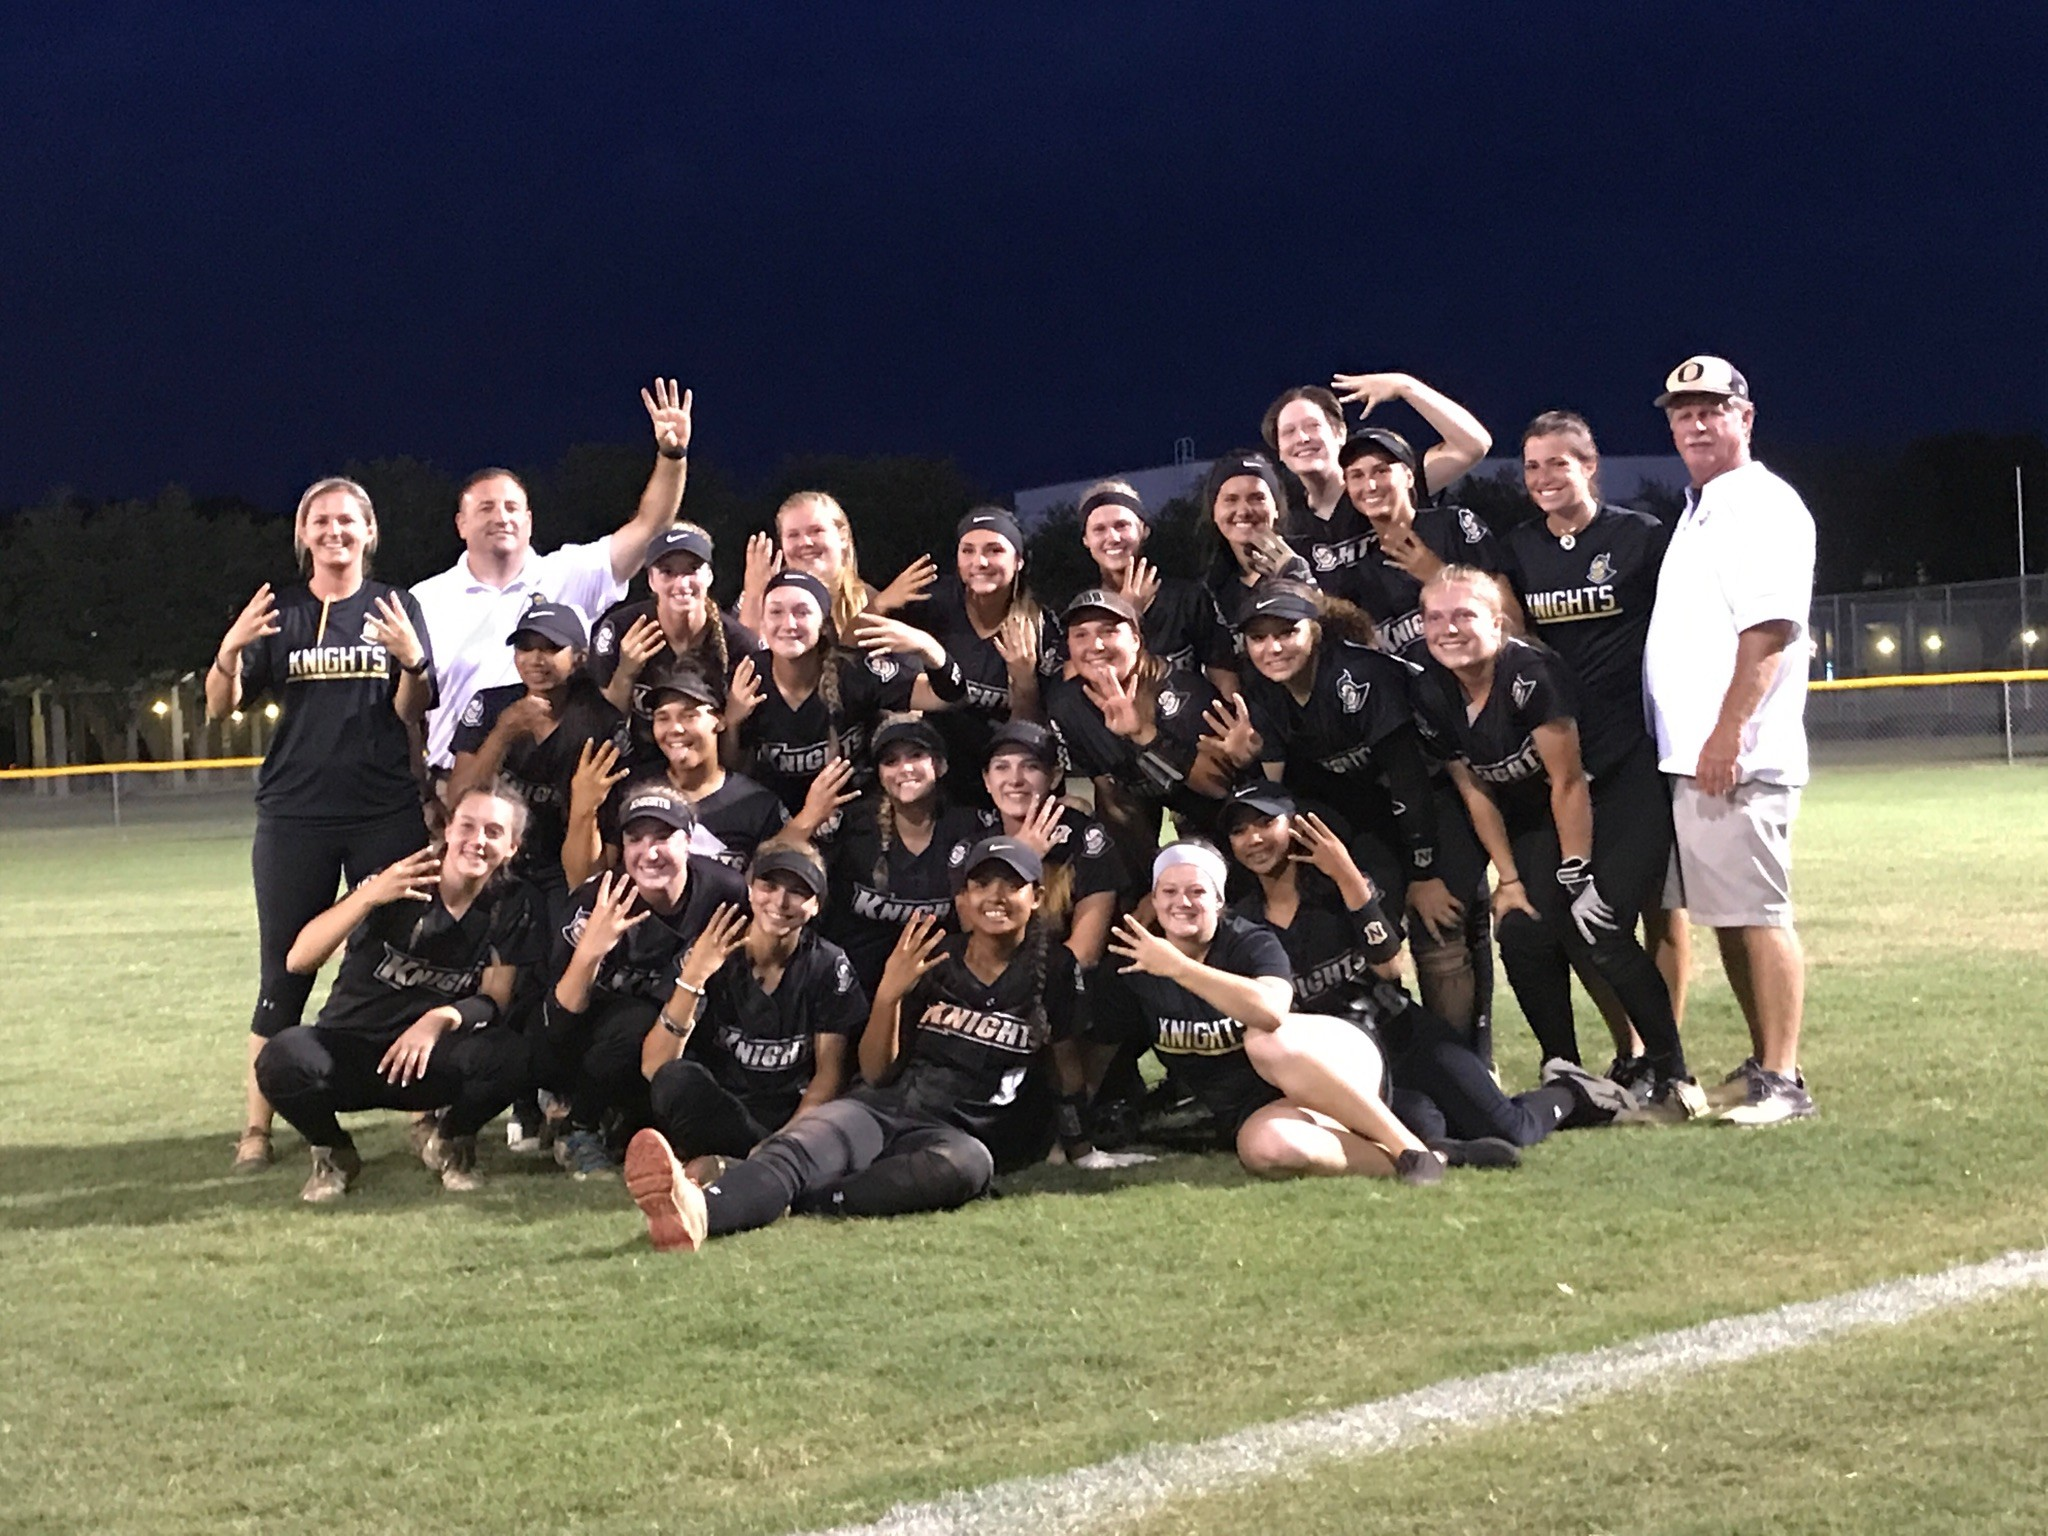 Oakleaf High's softball team show off their Final Four hand signal after defeated Wharton High 8-0 in the region 1-8A championship game in Tampa on Friday. Lady Knights, ranked second in Florida, take on St. Thomas Aquinas on Fri., May 19 in the state semifinal at Dodgertown Stadium in Vero Beach with shot at state title on Saturday with a win.